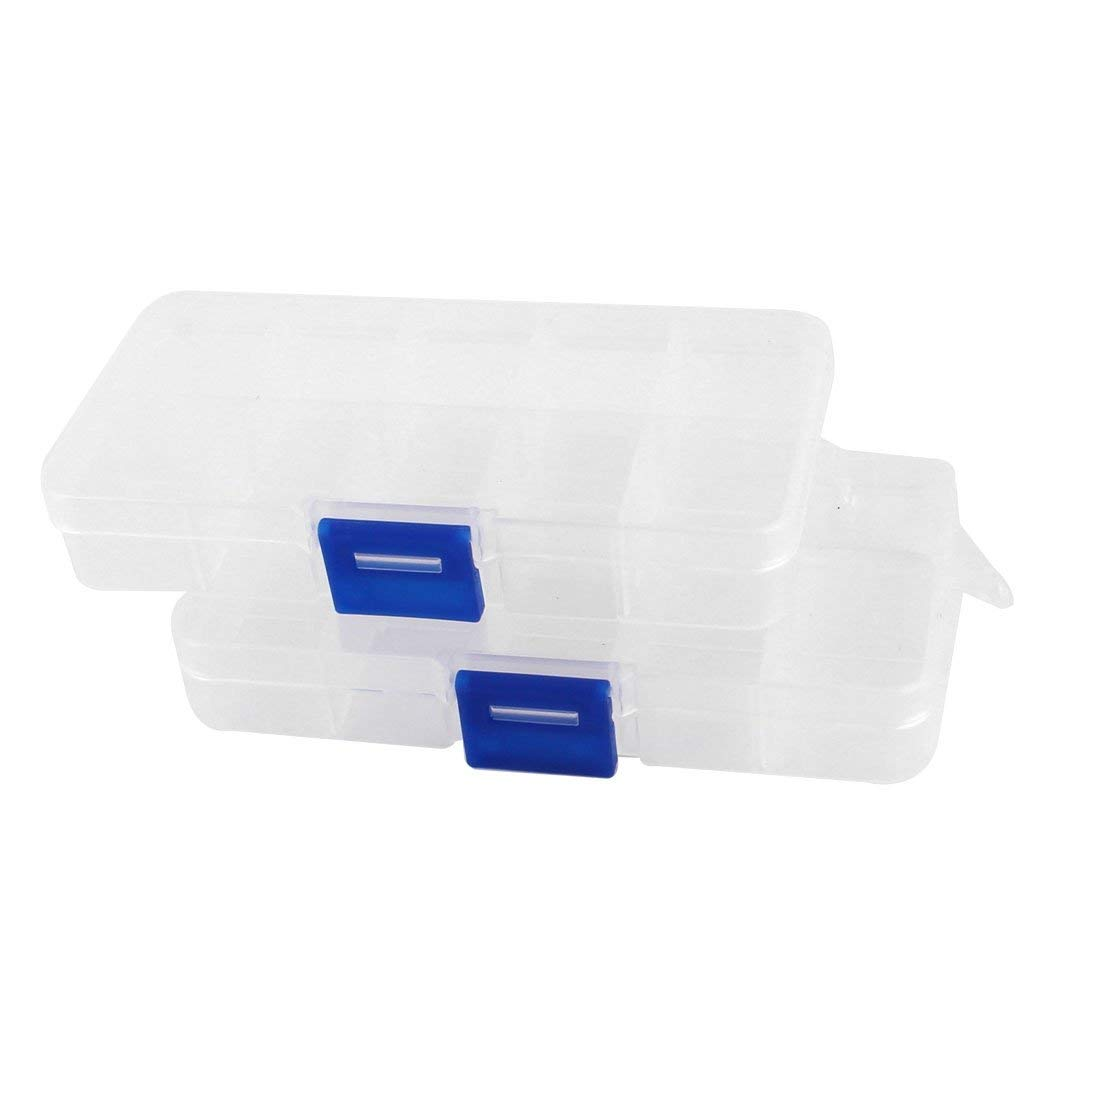 Aexit 2pcs Plastic Tools & Equipment 10 Compartments Electronic Components Storage Tool Boxes Box Case